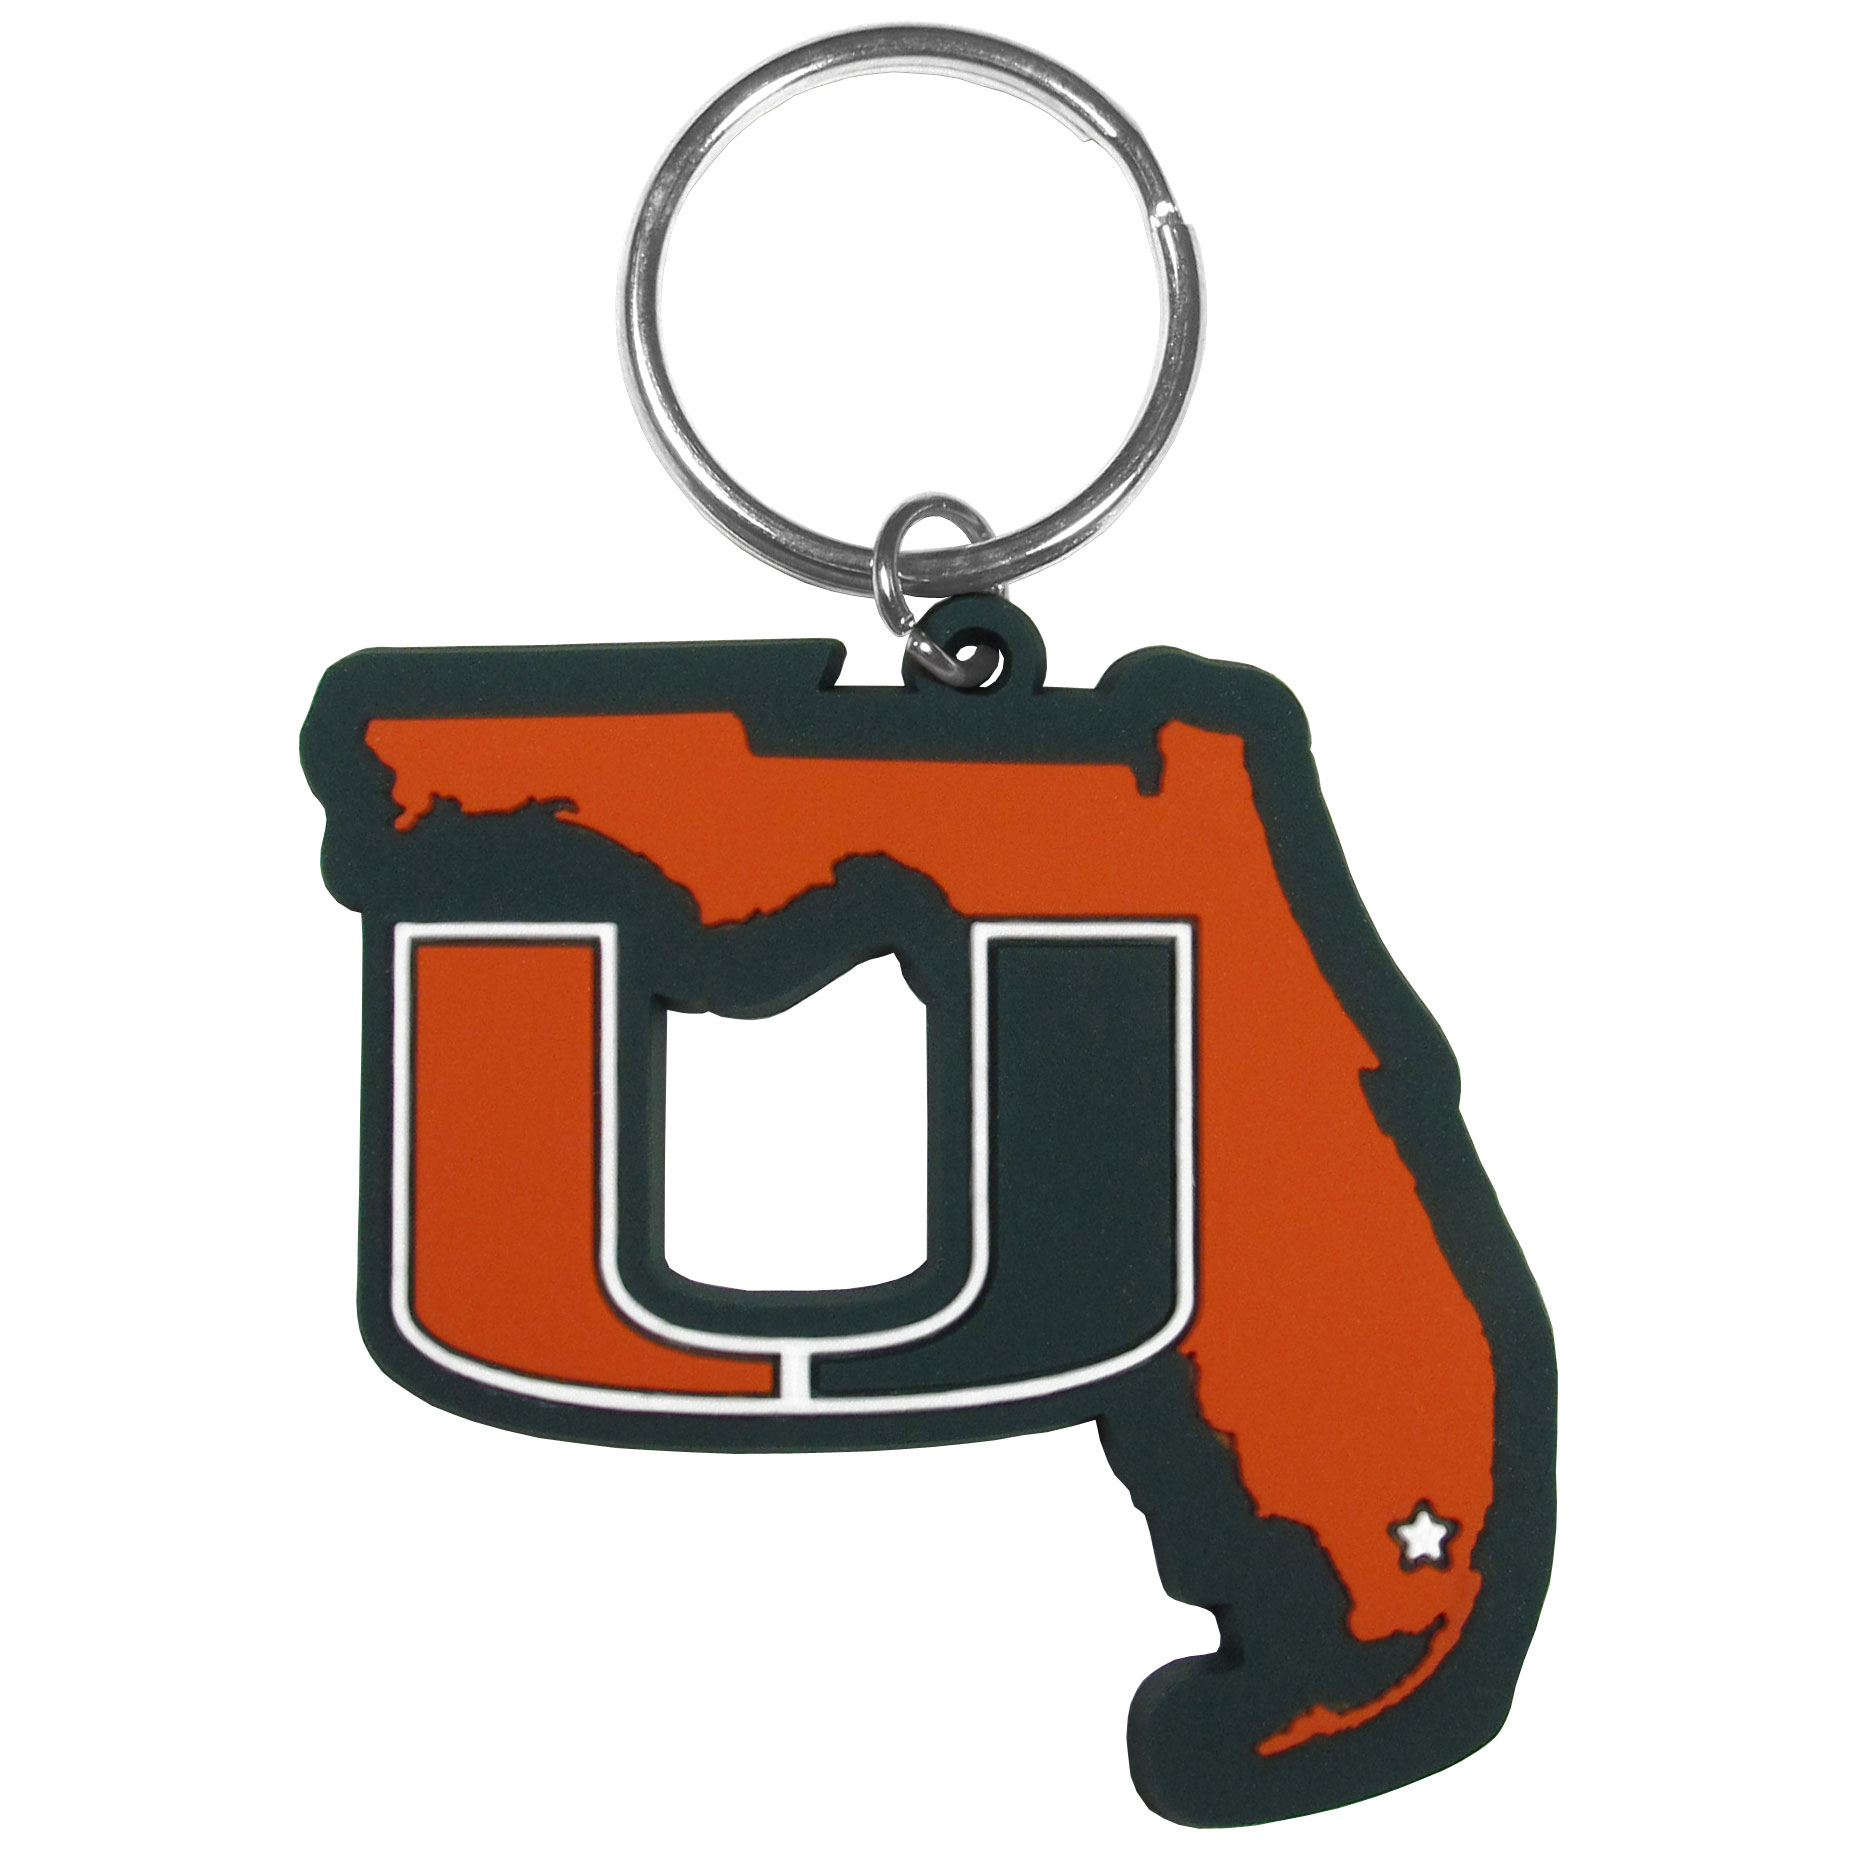 Miami Hurricanes Home State Flexi Key Chain - Our flexible Miami Hurricanes key chains are a fun way to carry your team with you. The pliable rubber material is extremely durable and the layered colors add a great 3D look to the key chain. This is really where quality and a great price meet to create a true fan favorite.